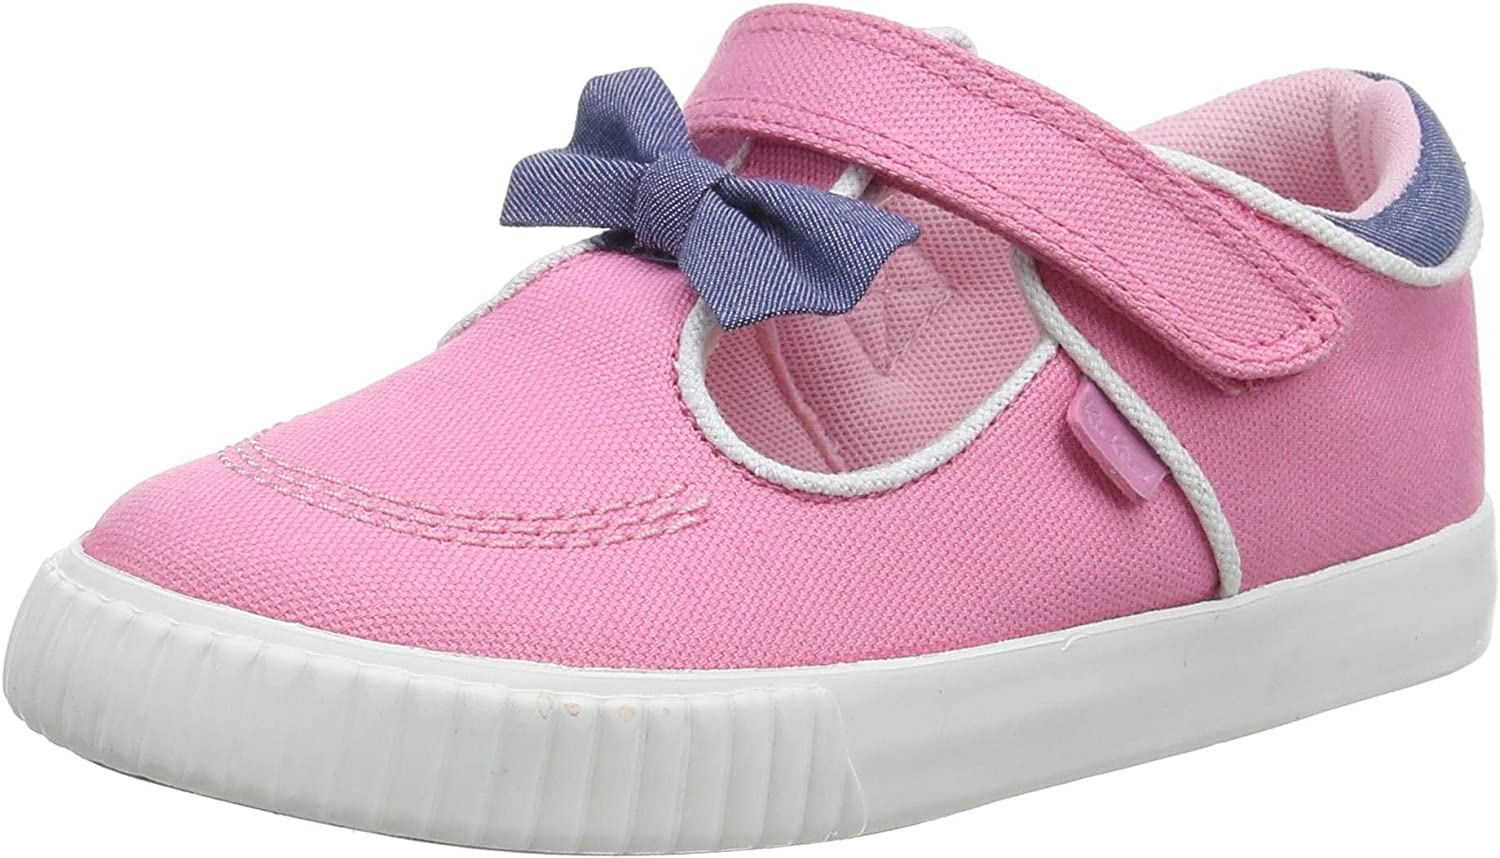 Kickers Girl's Tovni T-Bow Bumper Trainers, Pink Pink Pnk, 29